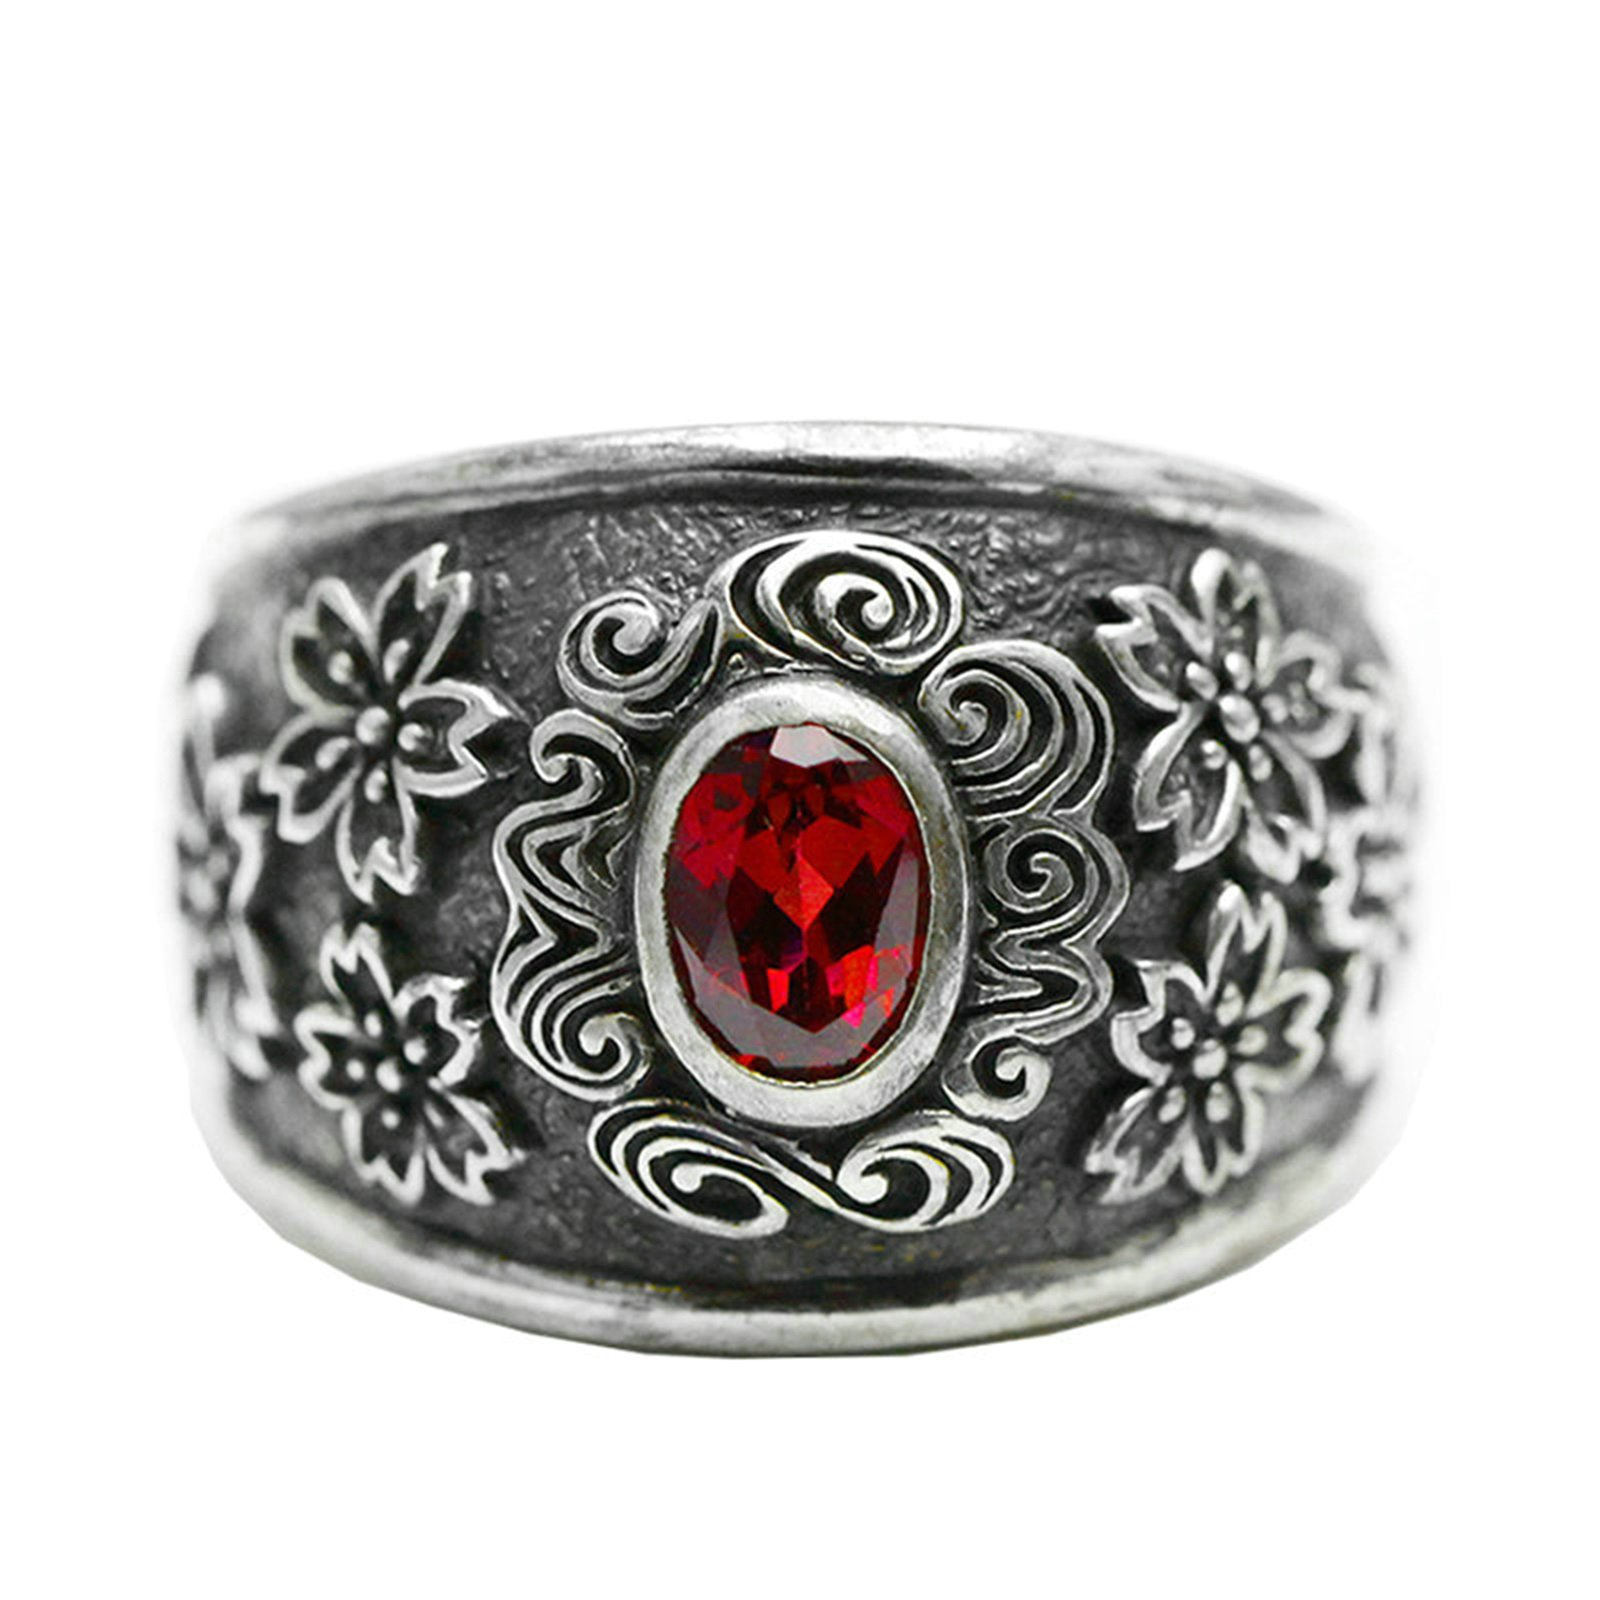 Anazoz S925 Sterling Silver Retro Style Punk Flower Red Cubic Zirconia Rings Unisex Size 9.5 by AnaZoz